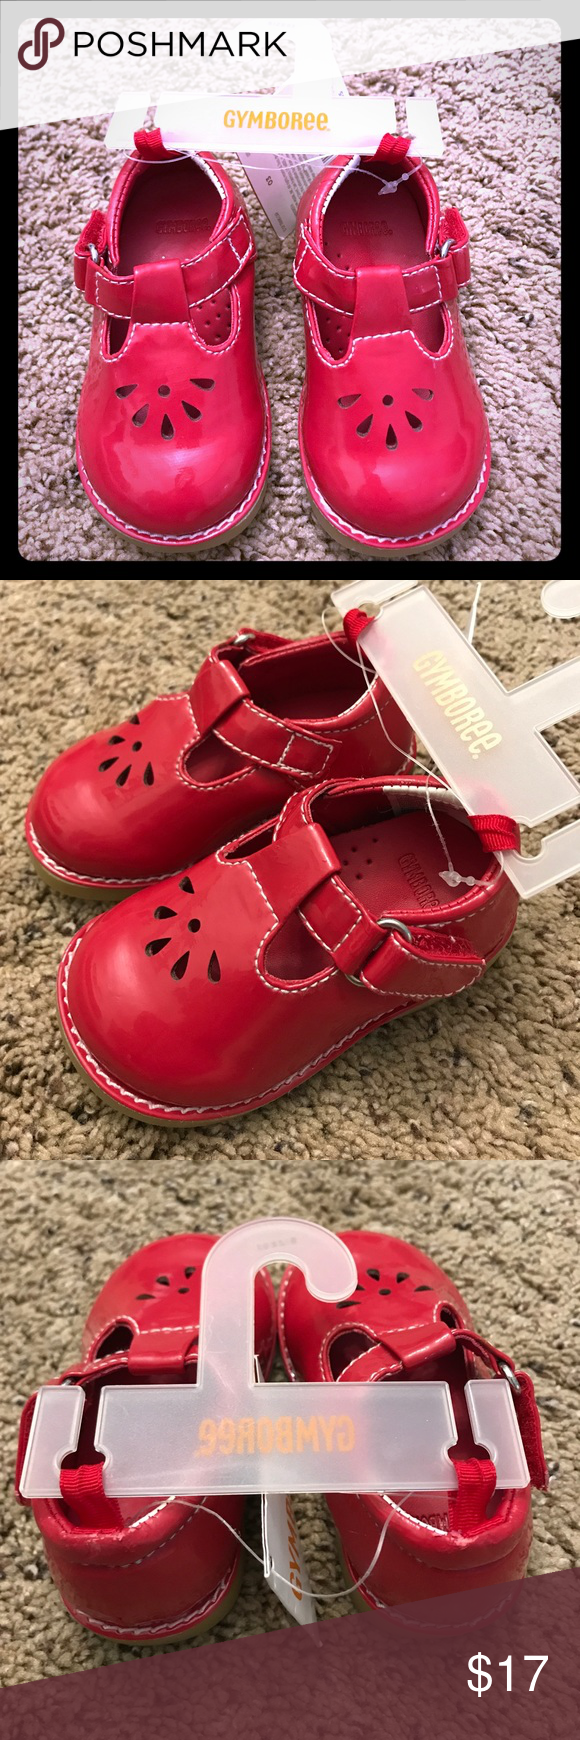 Girls red Gymboree shoes size 3 NWT Girls red Gymboree shoes, size 3.  Brand new with tags.  Shoes have velcro closure.  There is some very minor, unnoticeable scratches on the back of each shoe from the plastic holding the shoes together, as shown in the pictures. Gymboree Shoes